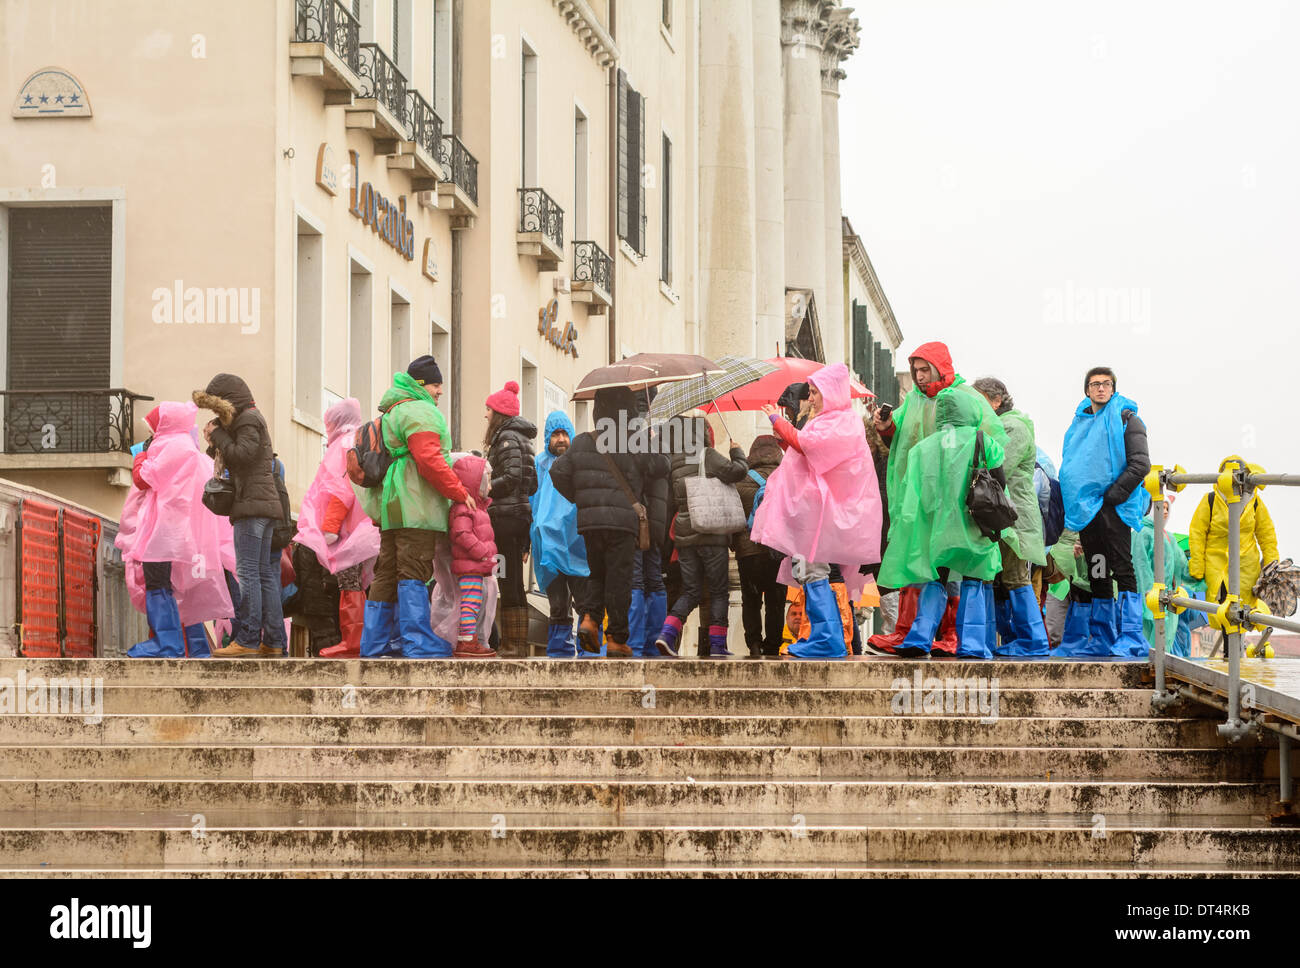 Venice, Italy. Tourists and children in wet weather clothing and rain boots, standing on a bridge during rain. - Stock Image